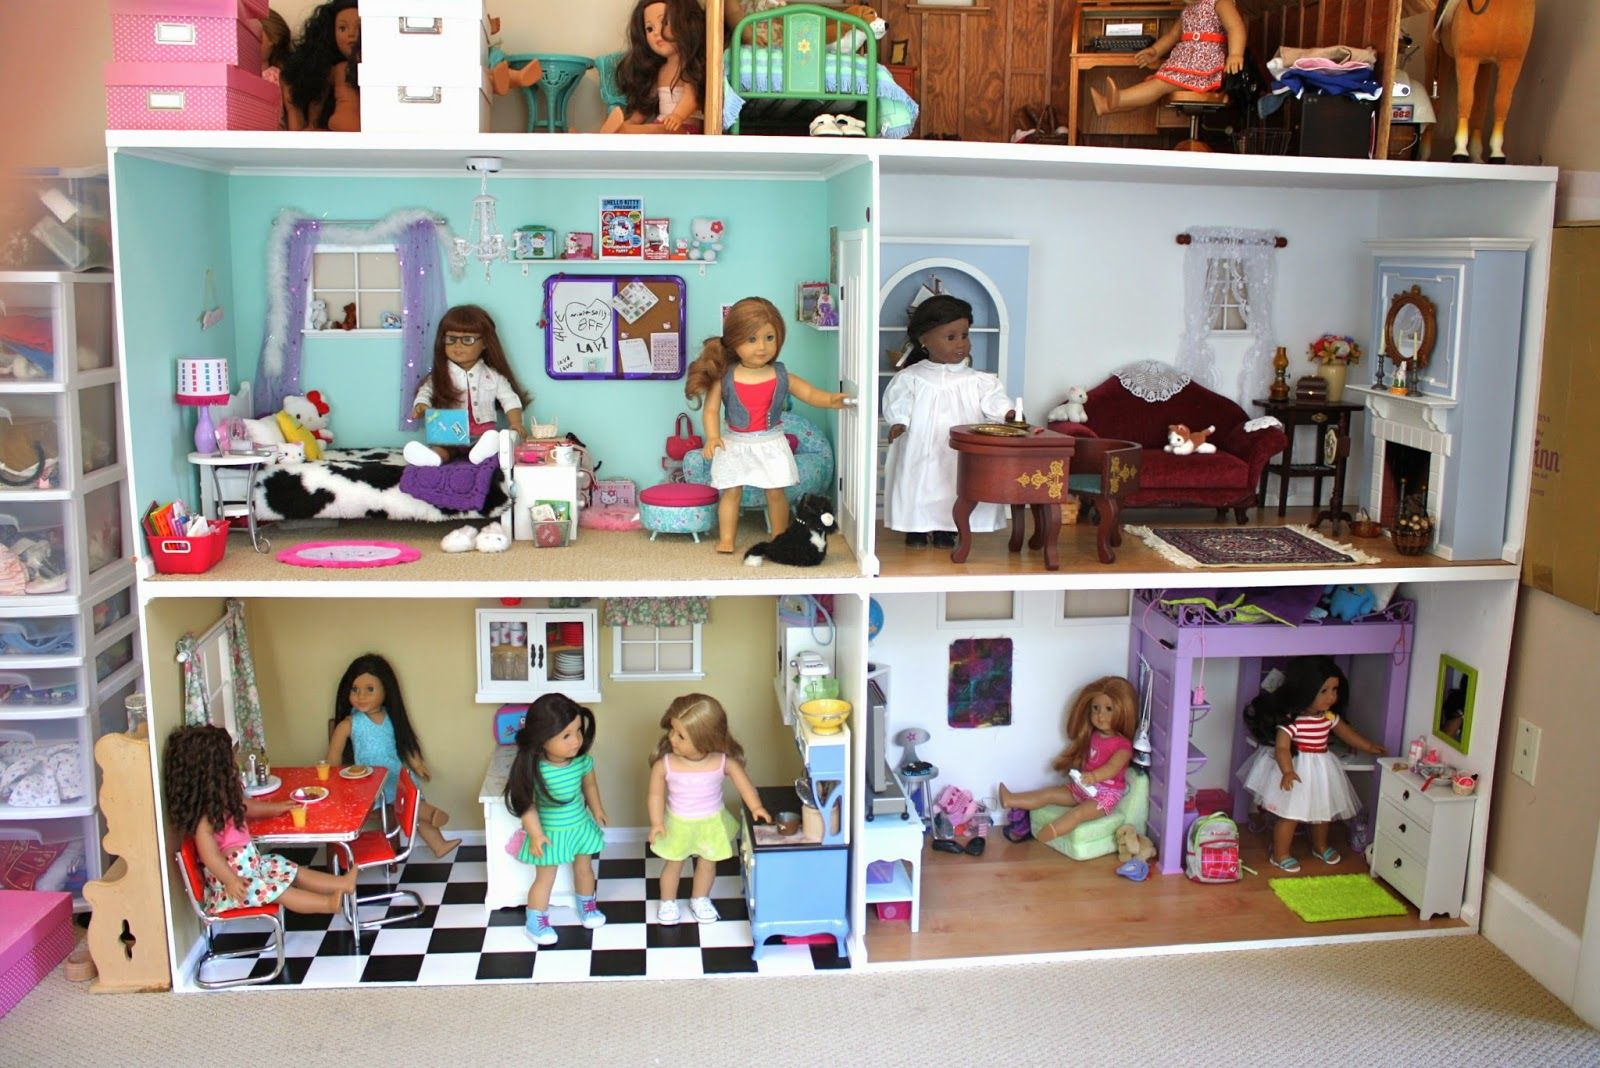 pippaloo for dolls: The Dollhouse Tour